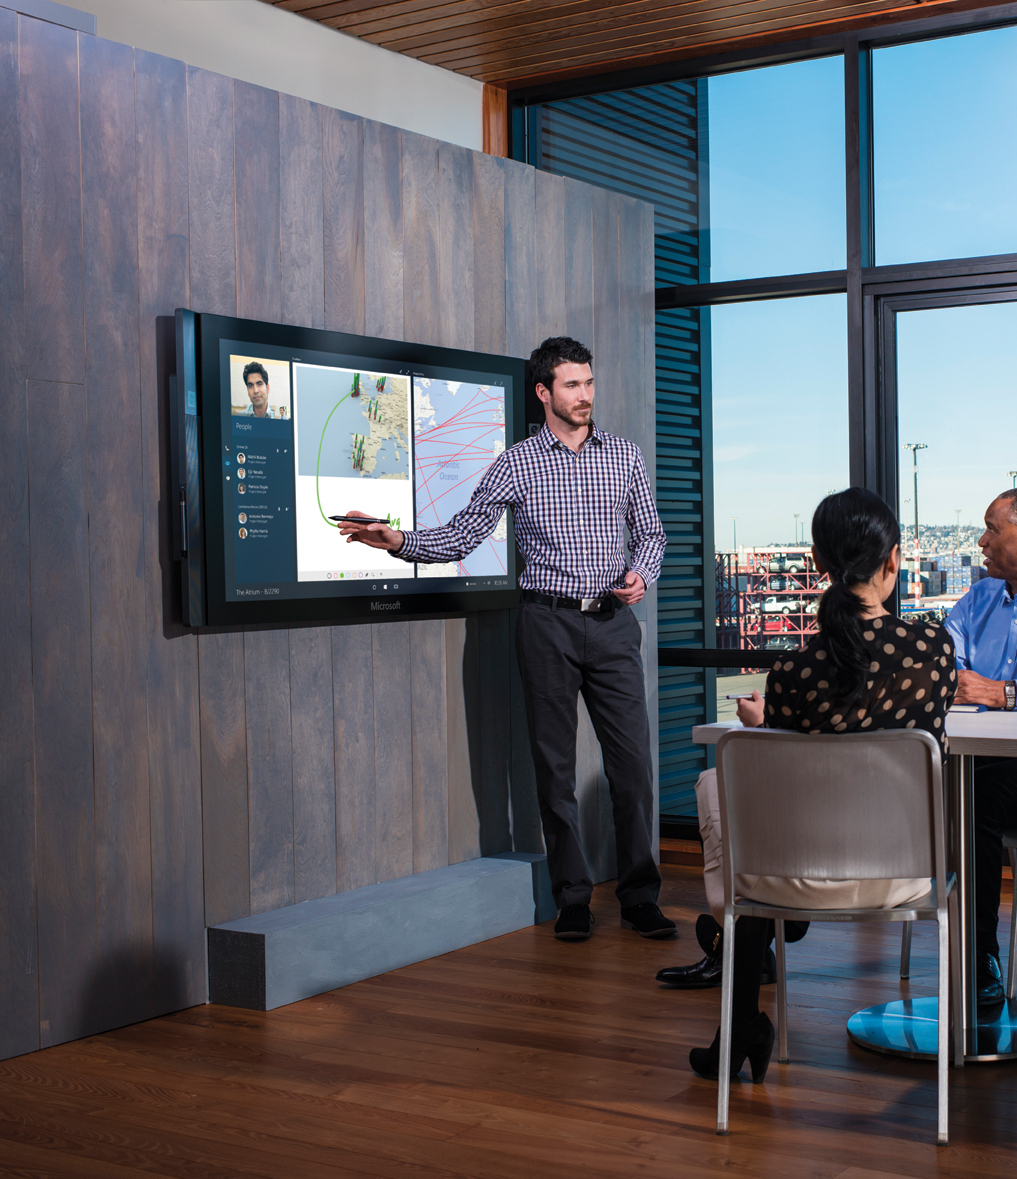 'Interactive digital whiteboards are definitely not for box-moving channel businesses'